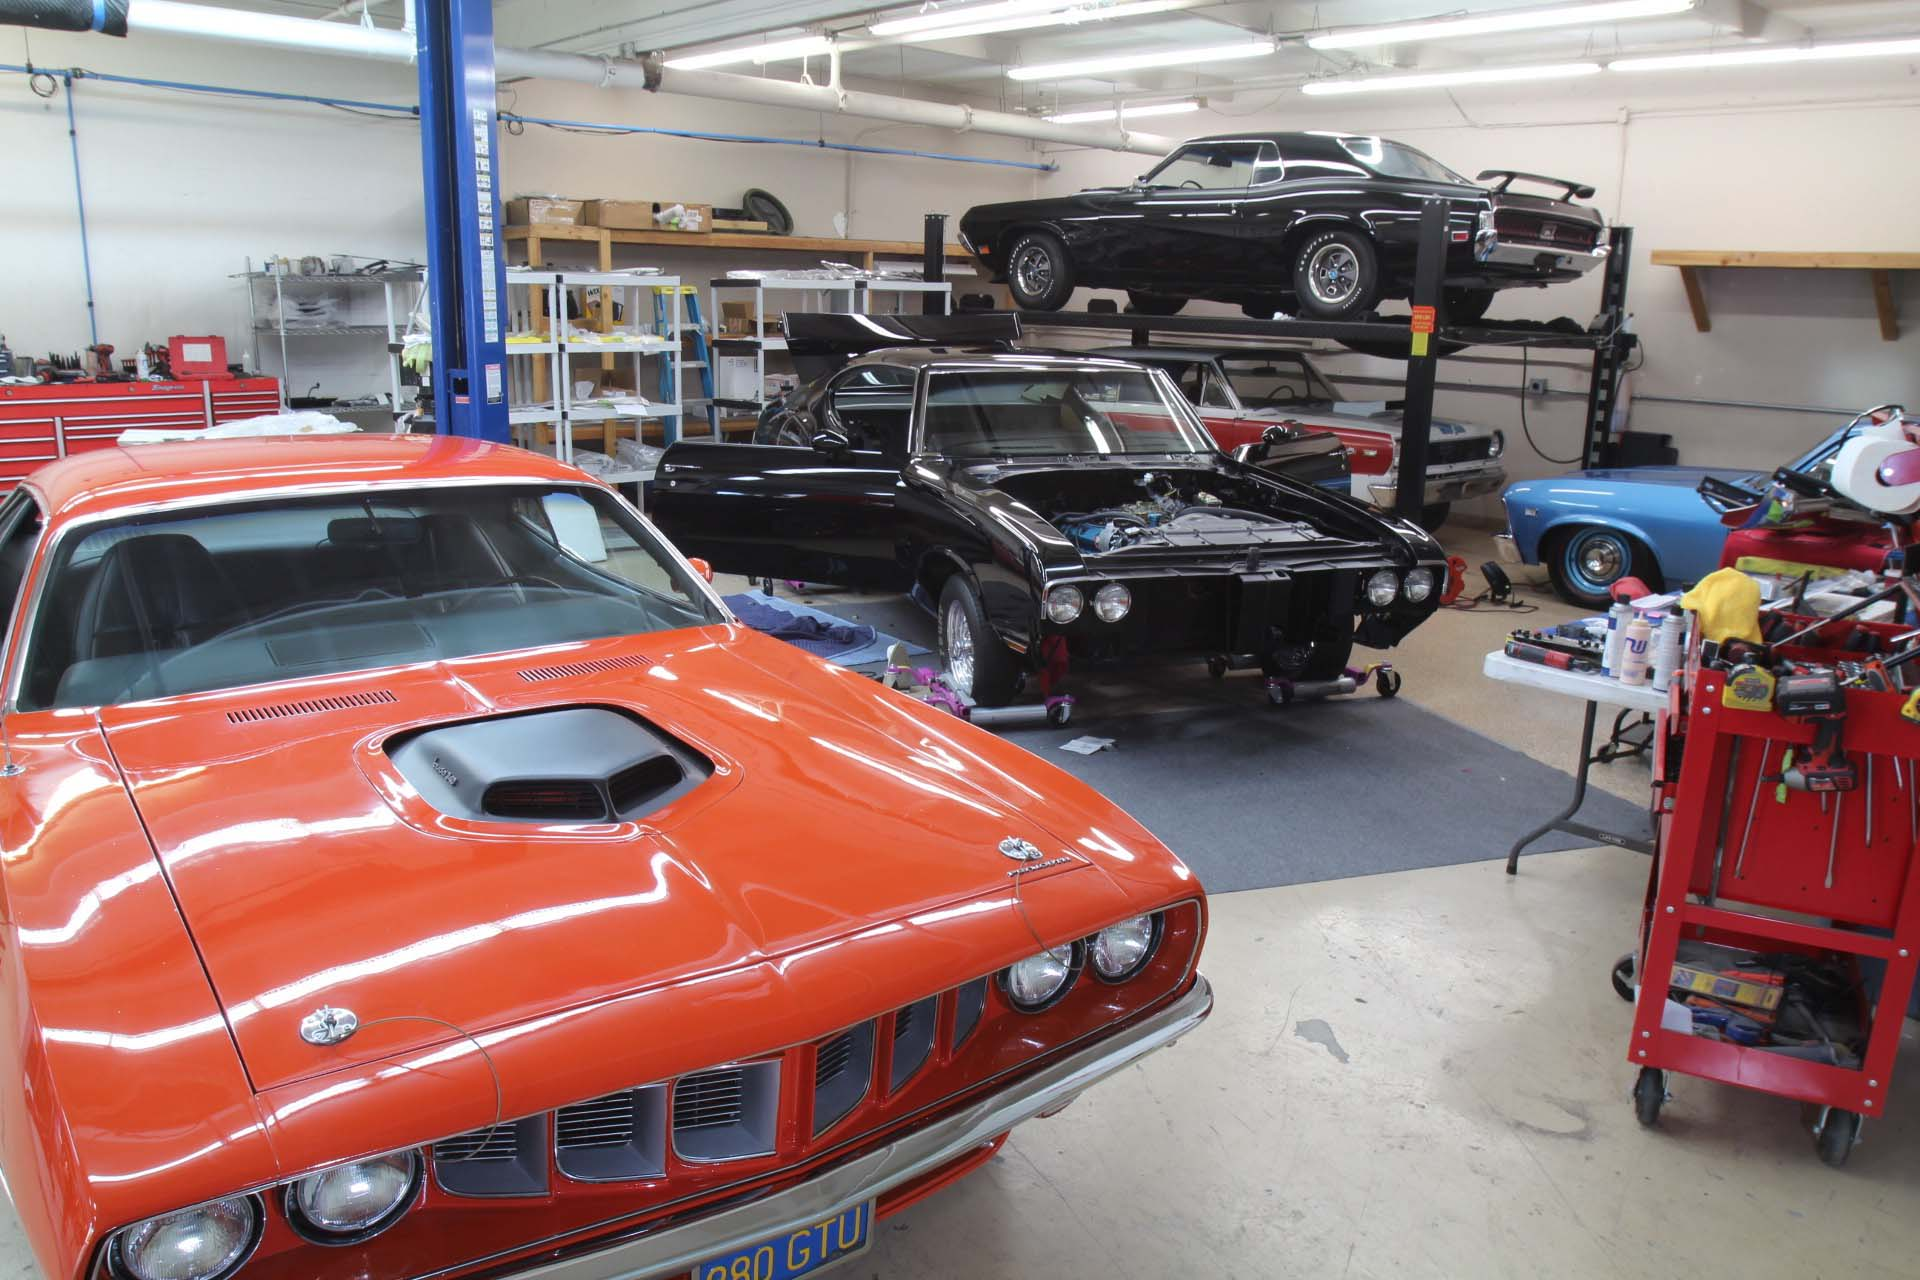 """This 1971 'Cuda is Ken's personal car. He found it on eBay needing precious little work to make it nice. """"I buffed the paint!"""" Ken joked, sounding a little relieved that this car didn't need a ton of bodywork. Its interesting combination of options is what makes the car unique: the 'Cuda has a 340 engine with a N96 Shaker hood, rear wing, and the billboard sticker package. To that, Ken added Control Freaks' front coilover suspension conversion. Ken also rebuilt the engine, turning it into a stealthy-looking 408 with Wiseco pistons and a hydraulic roller cam conversion."""